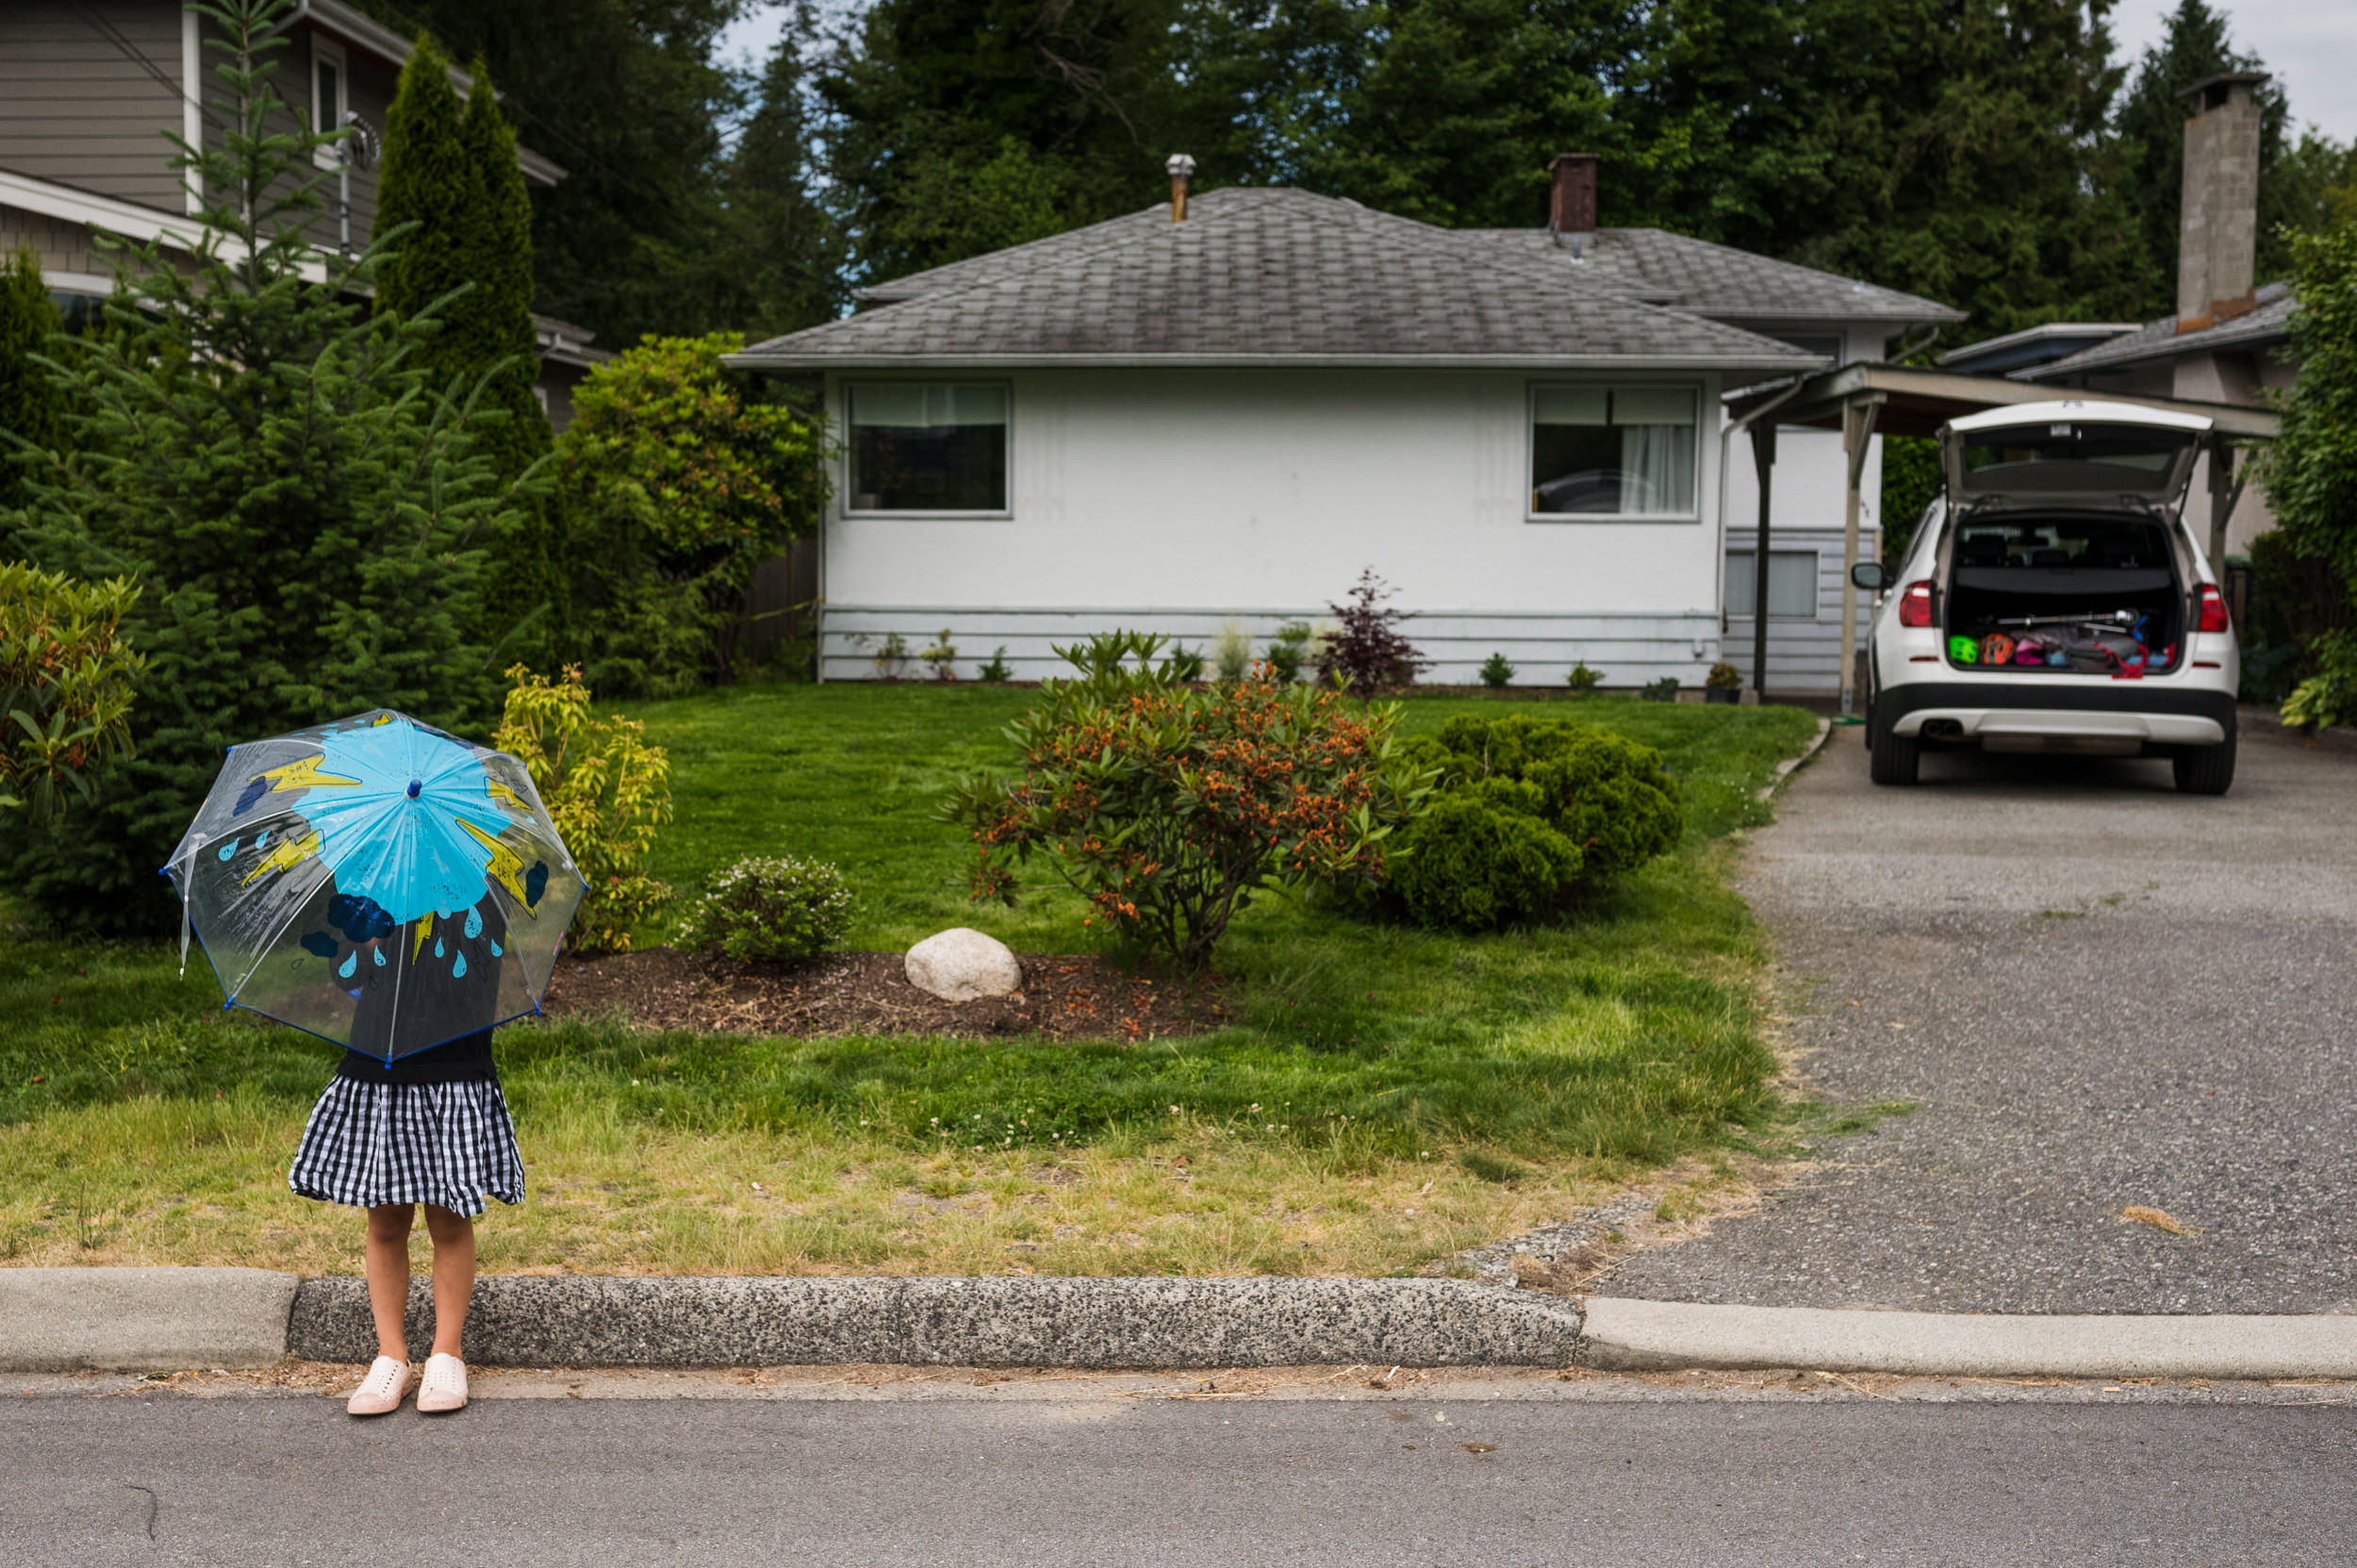 A little girl stands outside in front of her house on a sunny day with a rain umbrella.